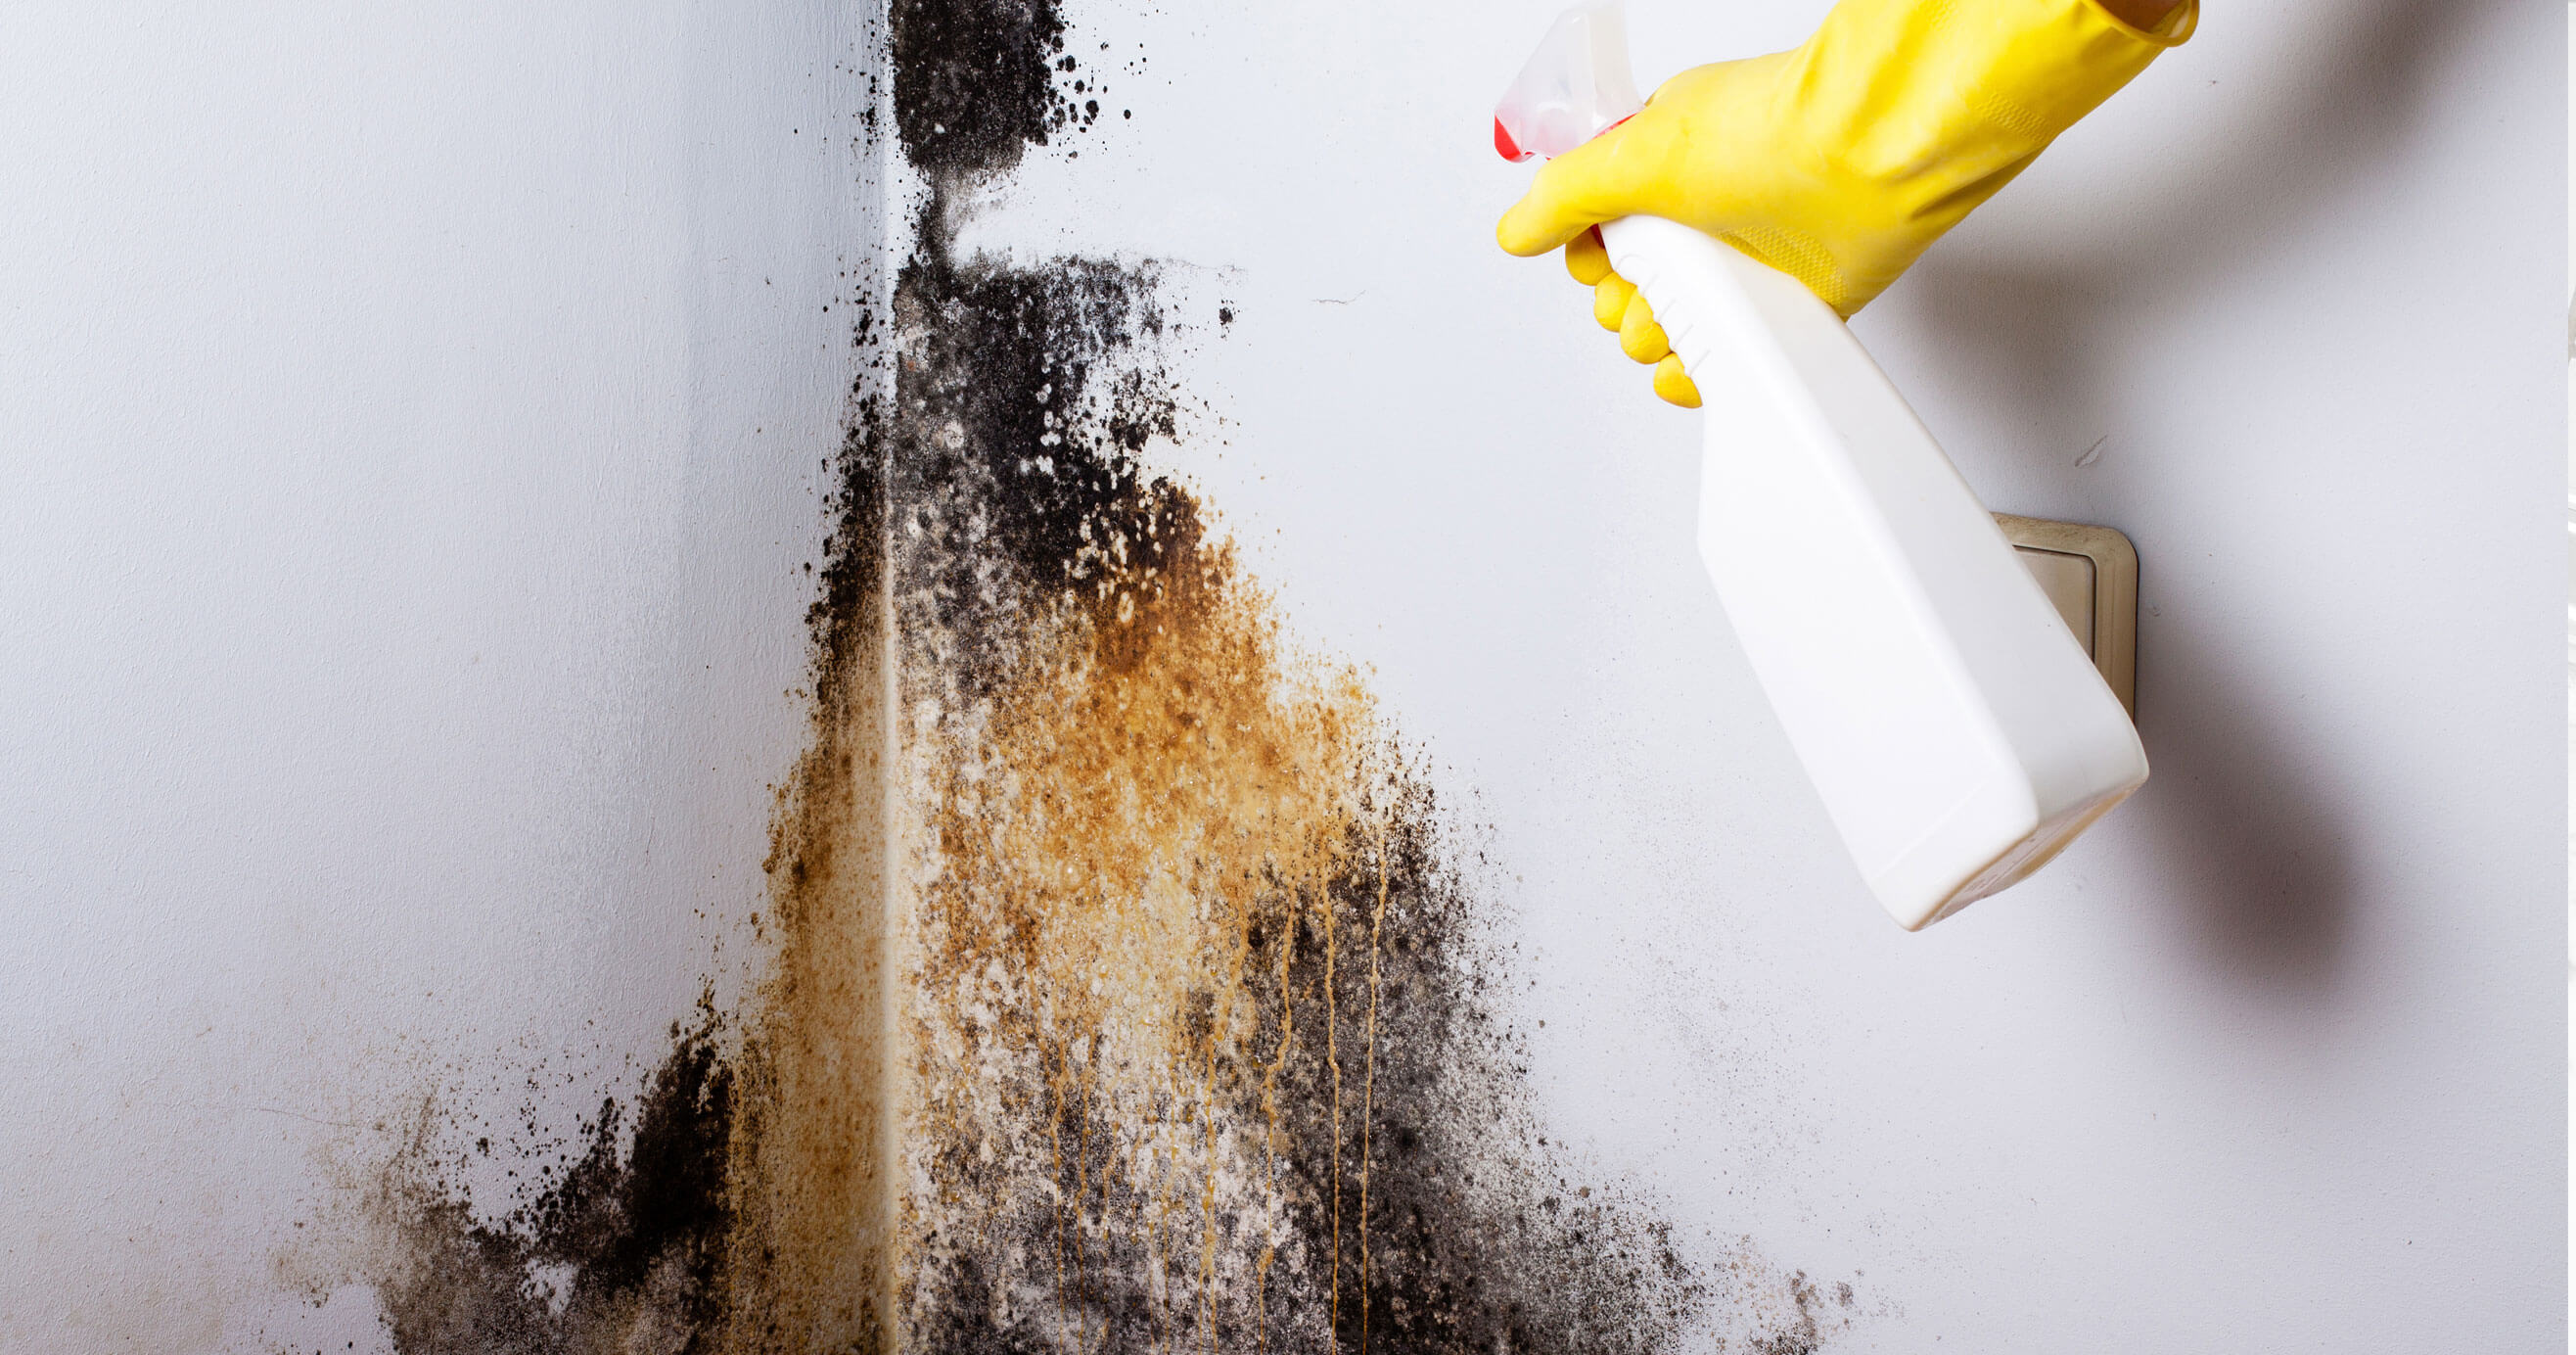 Removing black mold on a wall